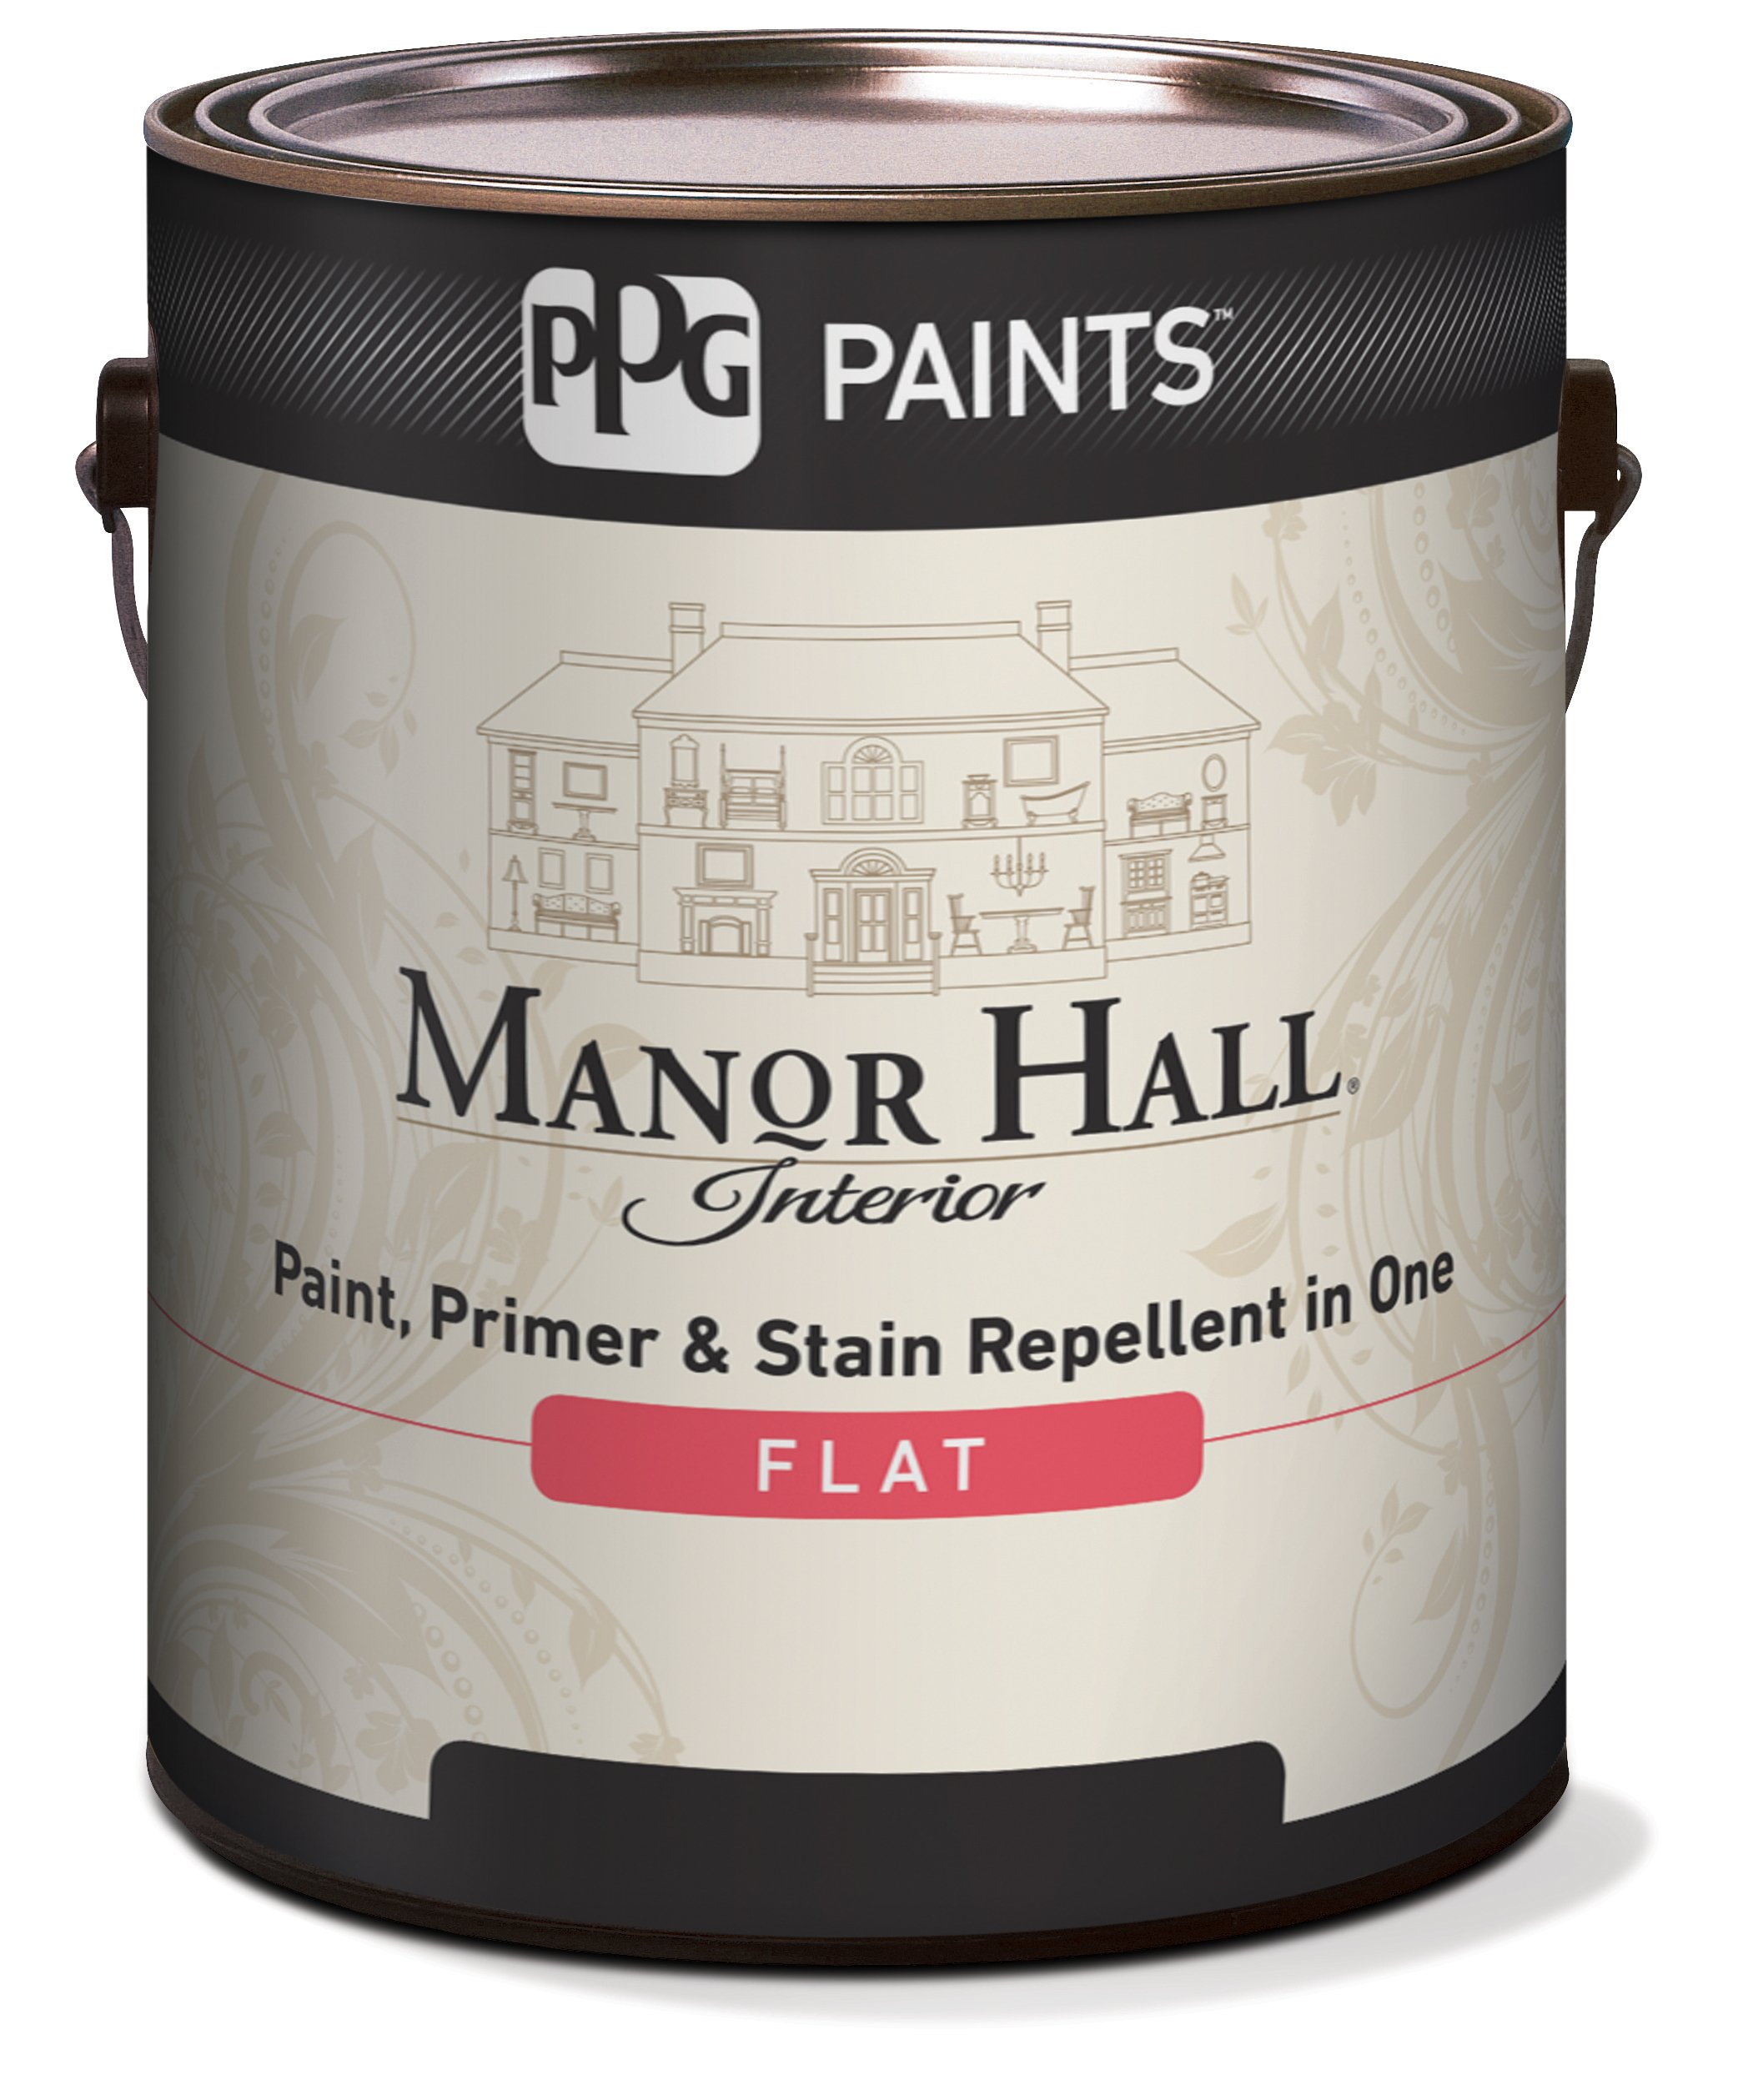 Manor Hall PPG Paint